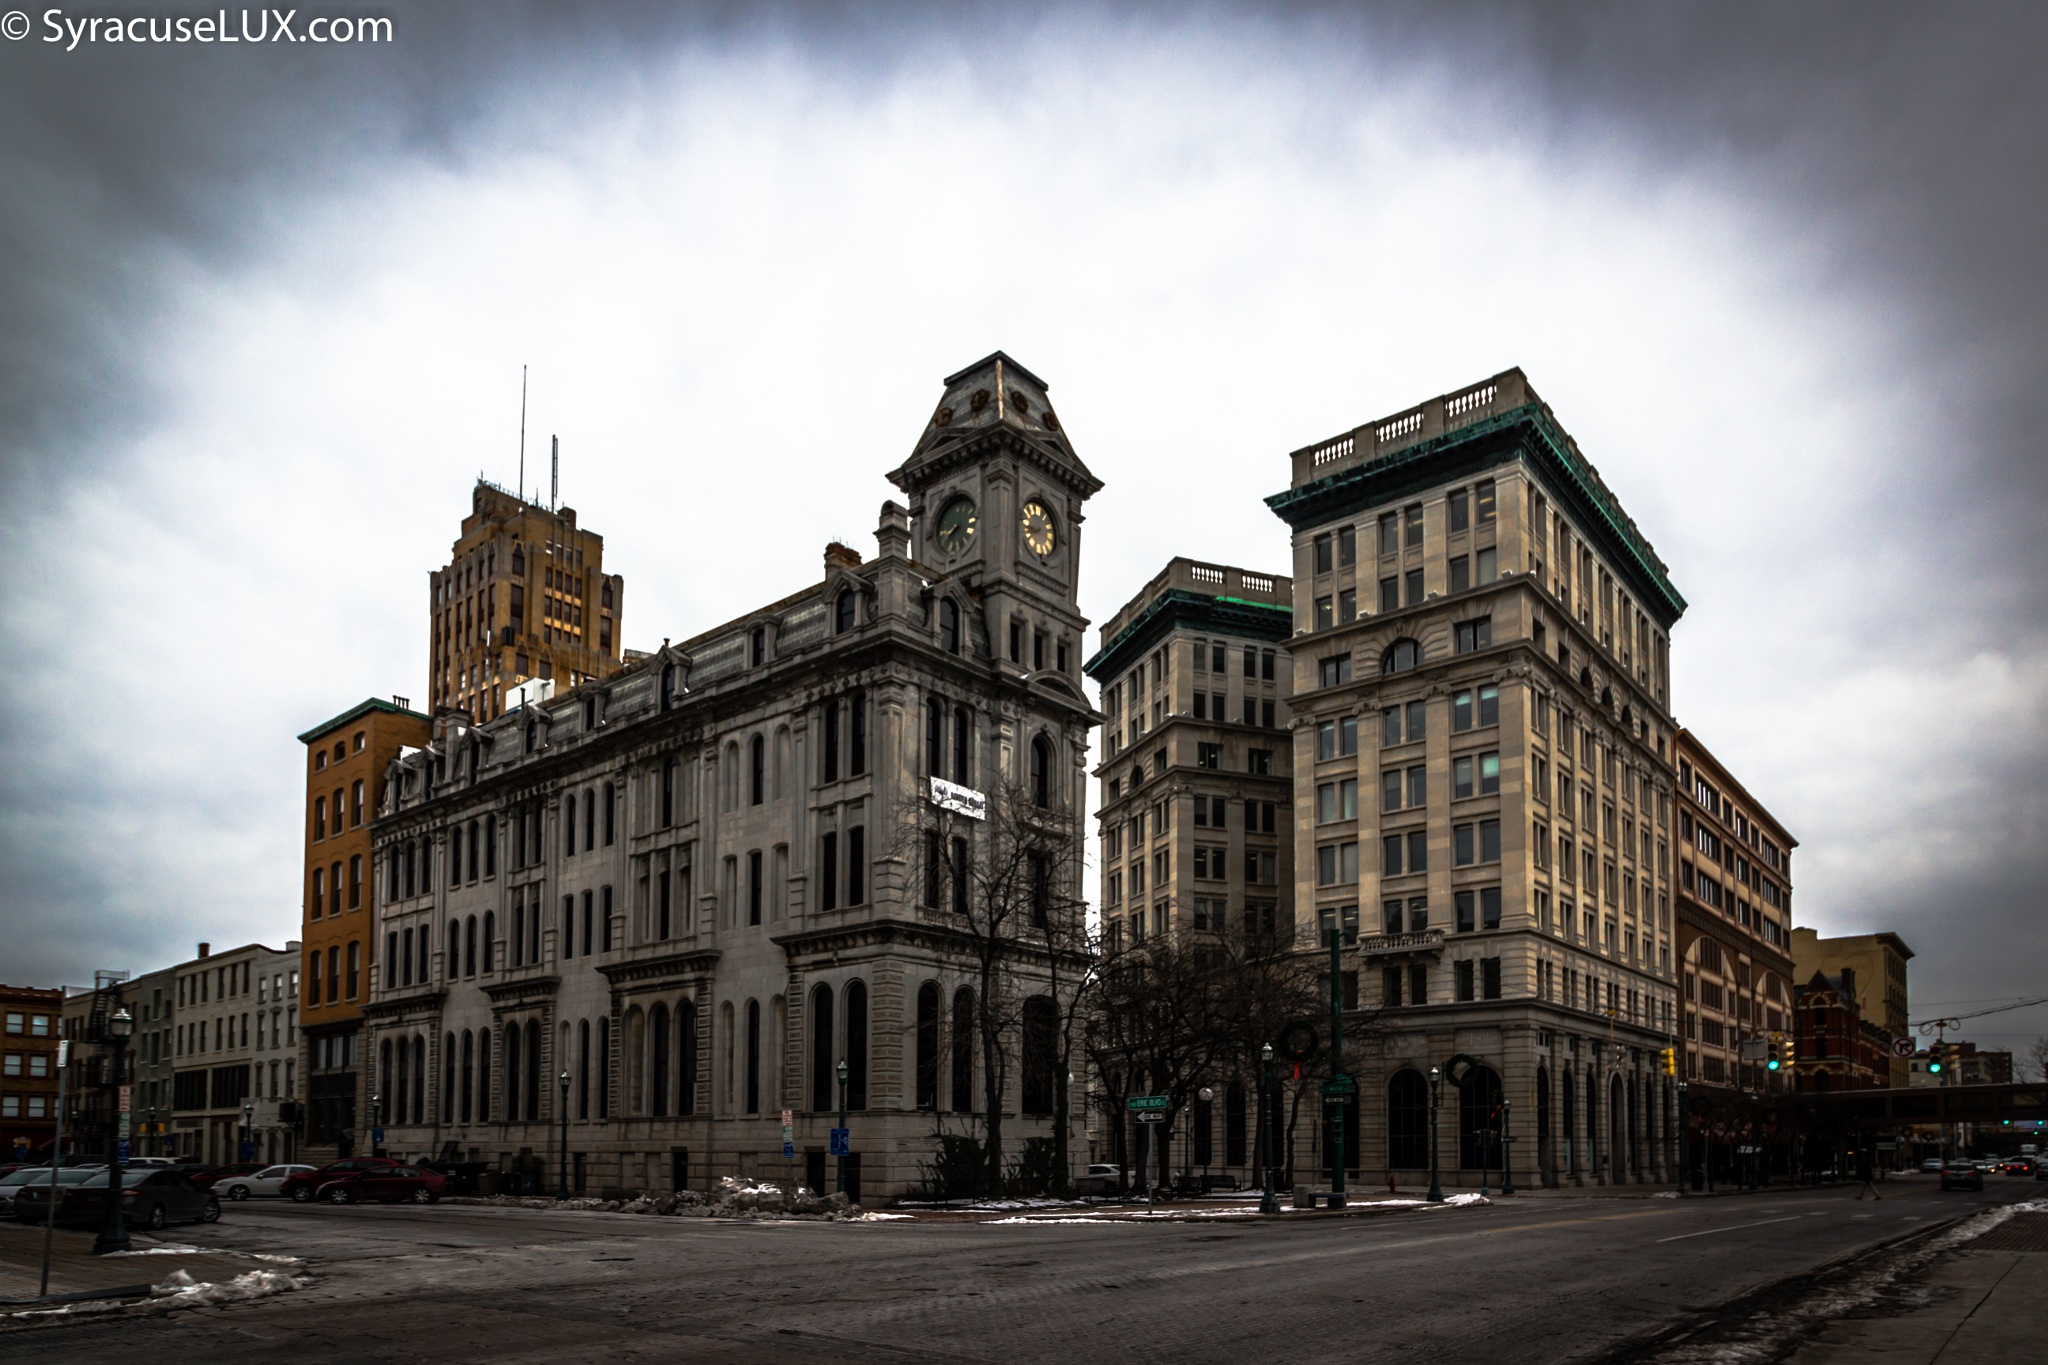 Syracuse Downtown at Clinton Square by MF - SyracuseLUX